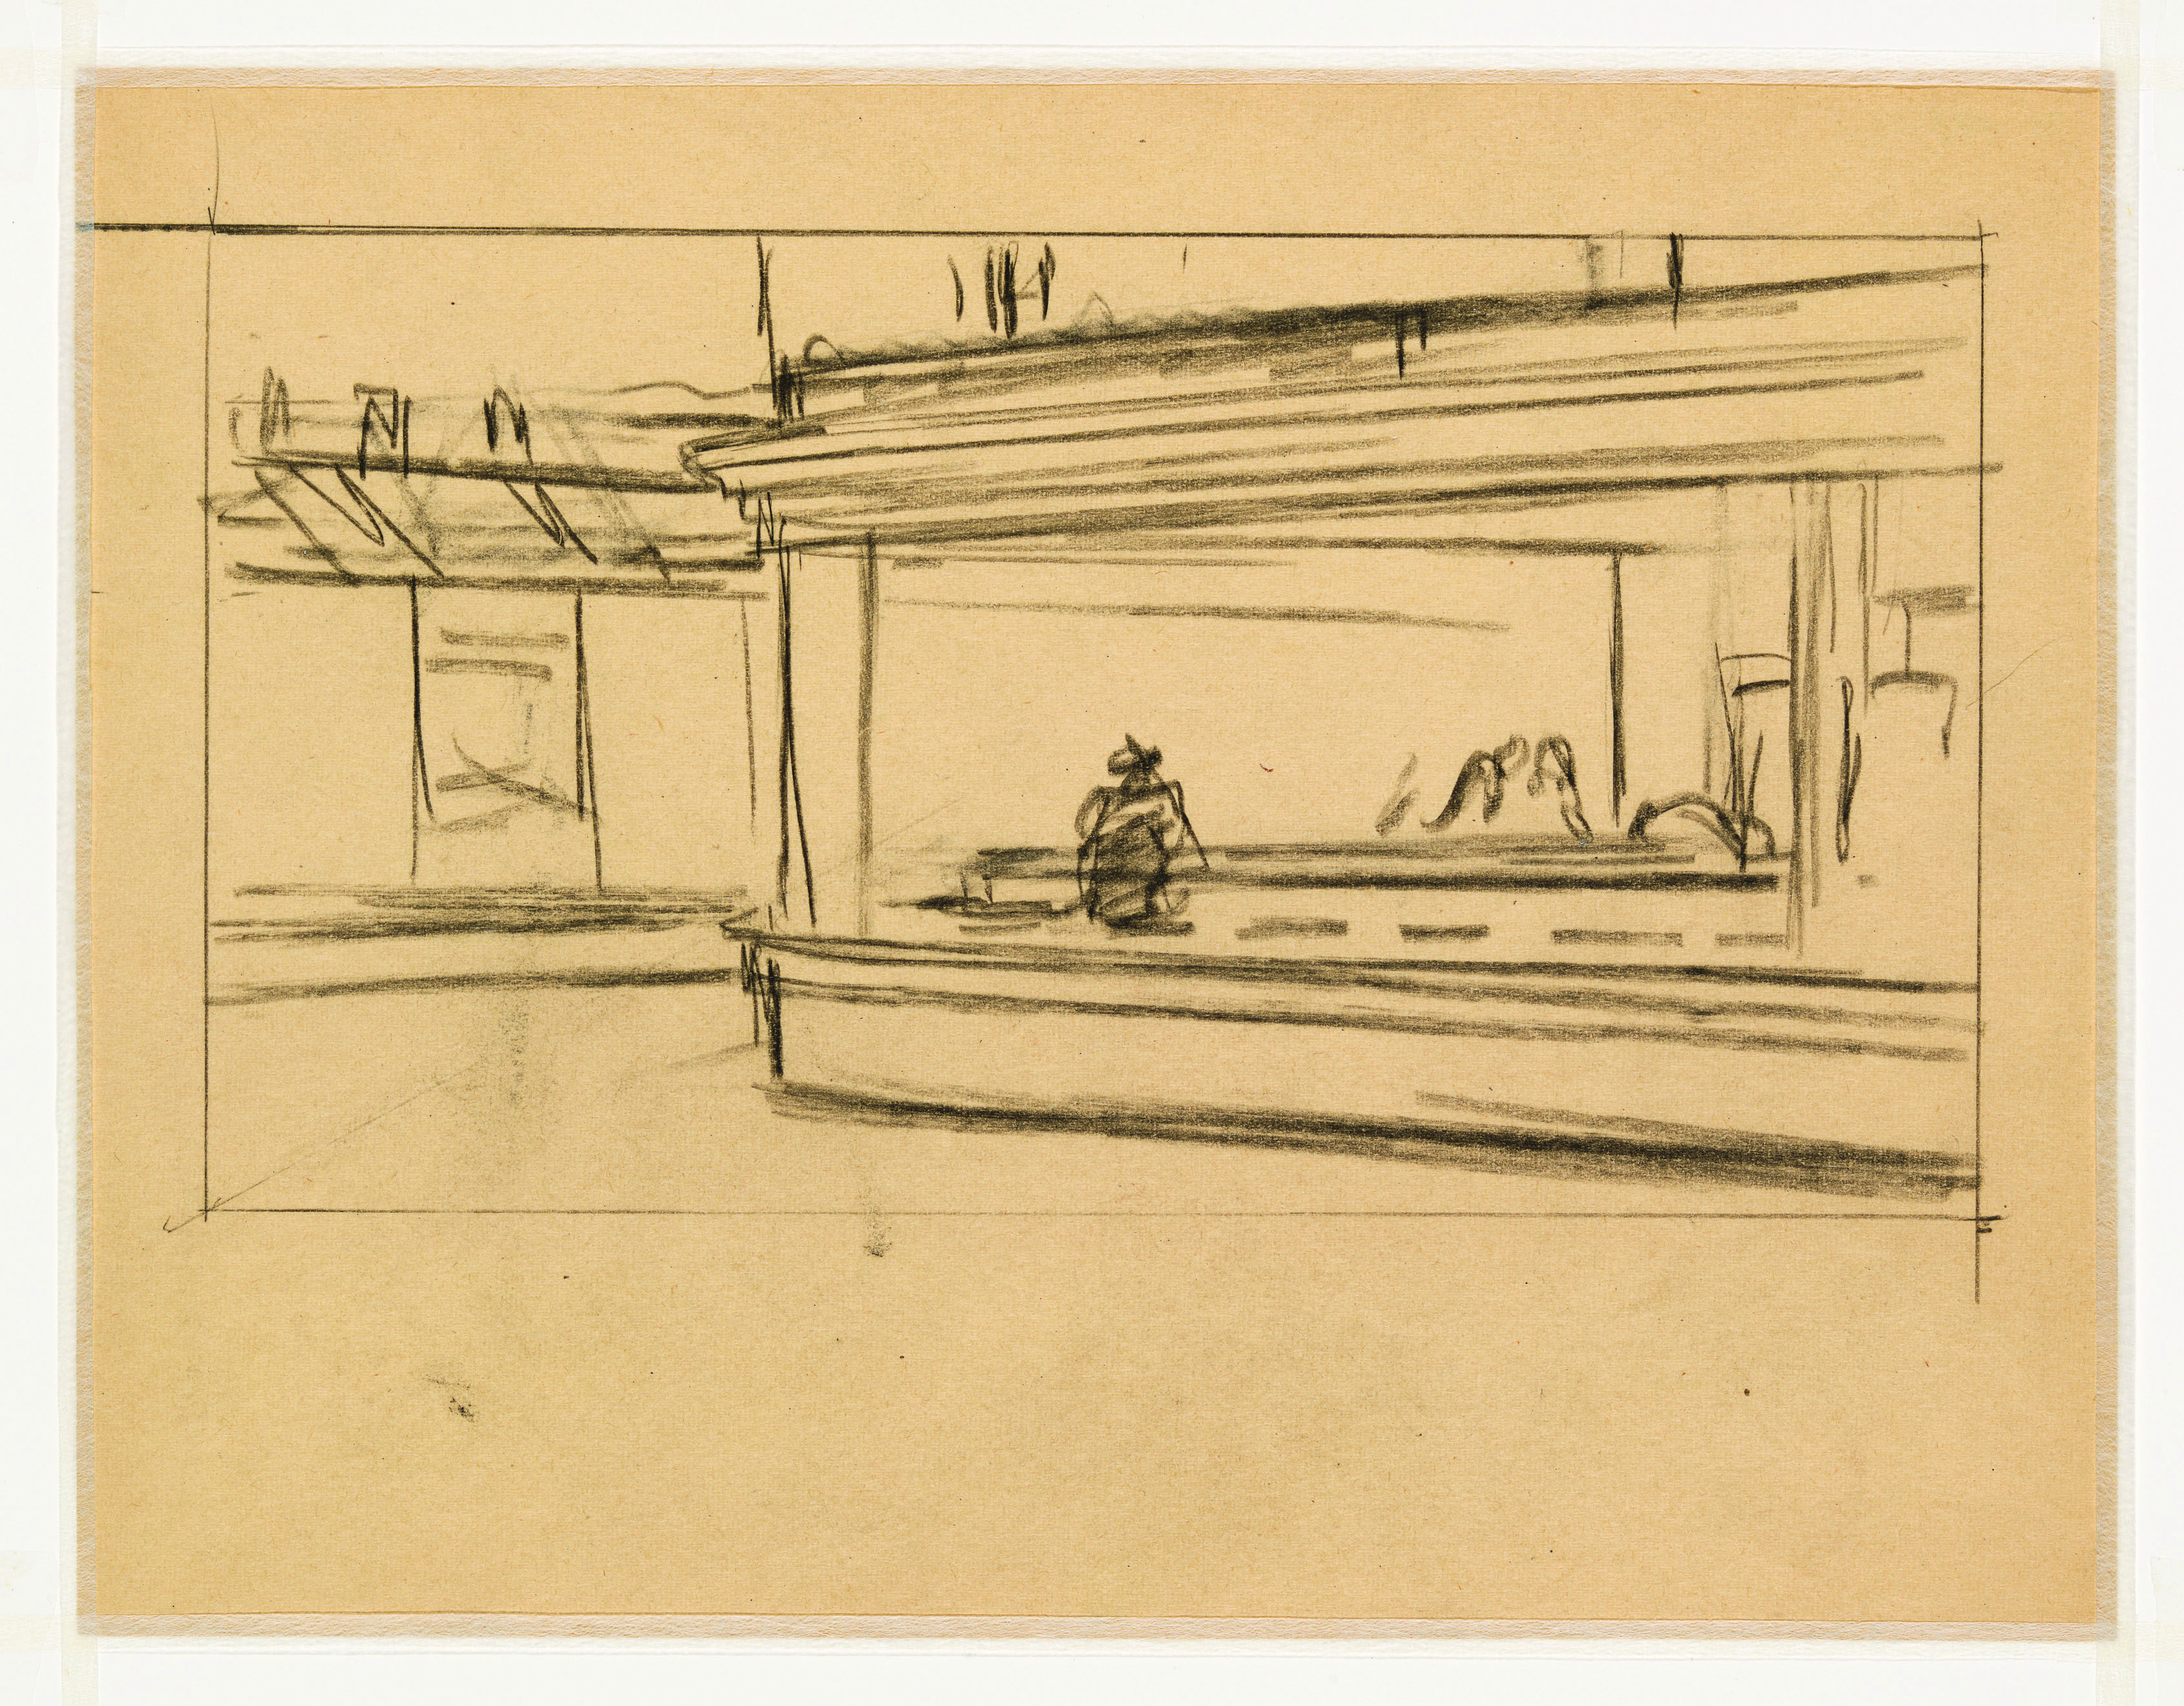 edward hopper research papers Meet painter edward hopper at biographycom his portrait of a late-night corner diner, nighthawks , became an icon of mid-century art.